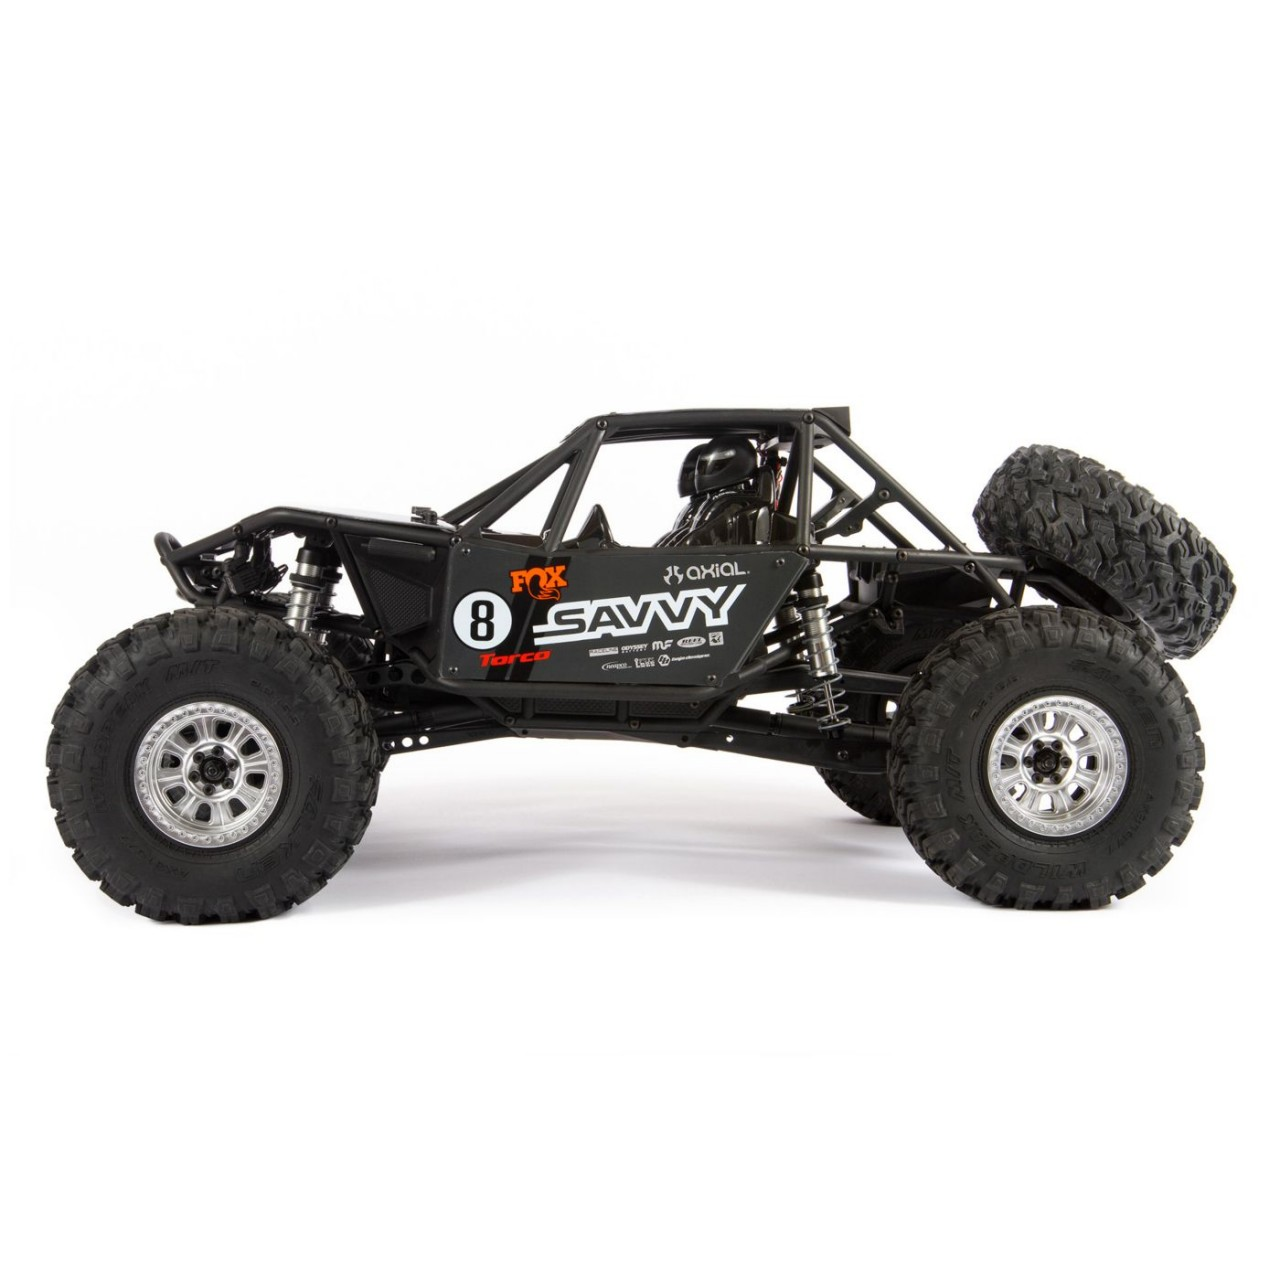 Axial 1/10 RR10 Bomber 4WD Rock Racer RTR, Savvy AXI03016T2